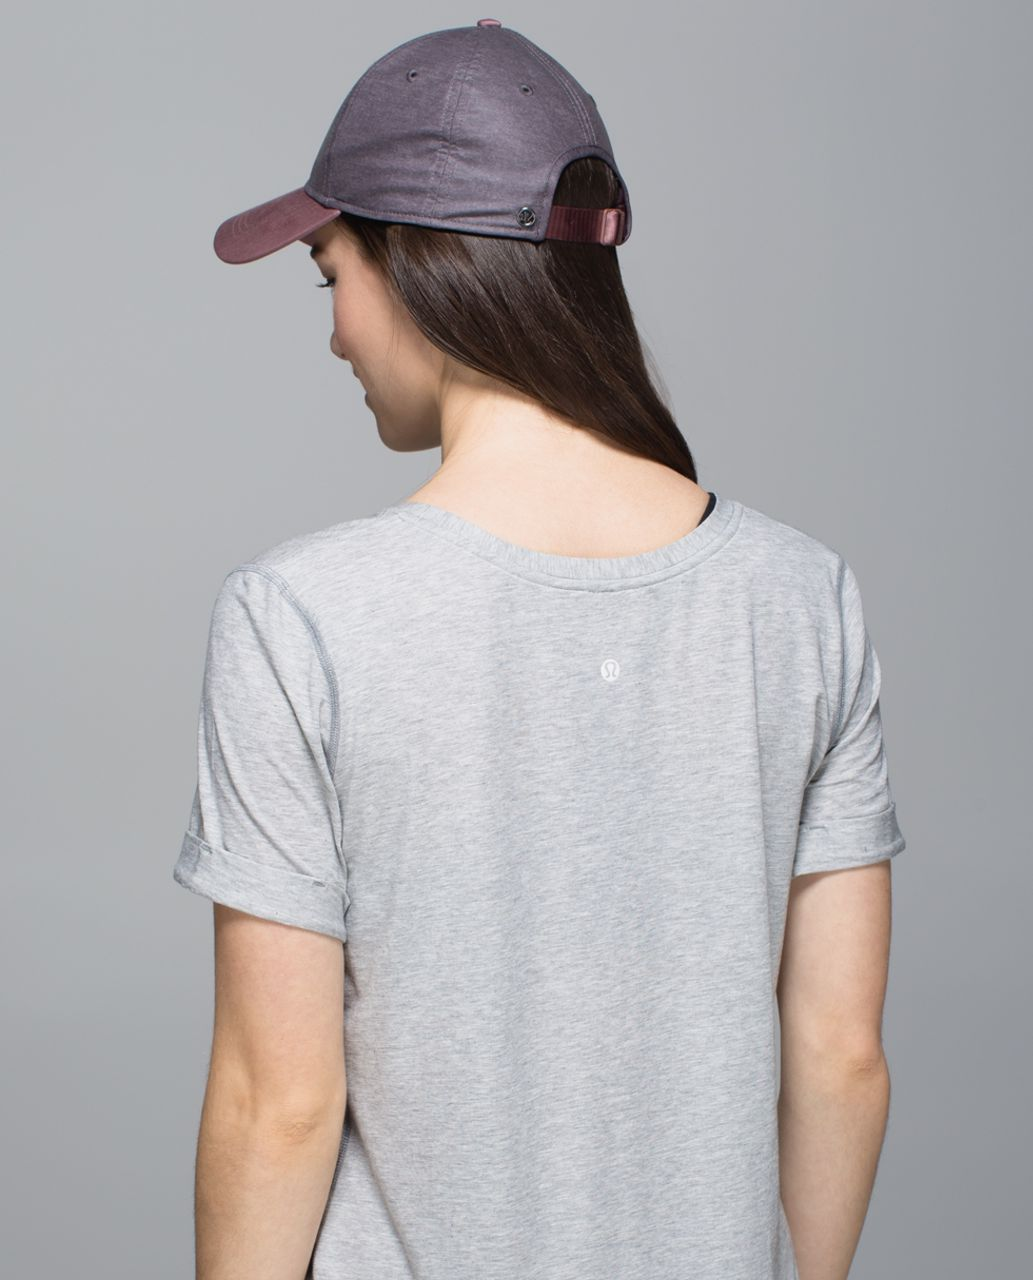 Lululemon Baller Hat - Heathered Black Cherry / Bark Berry